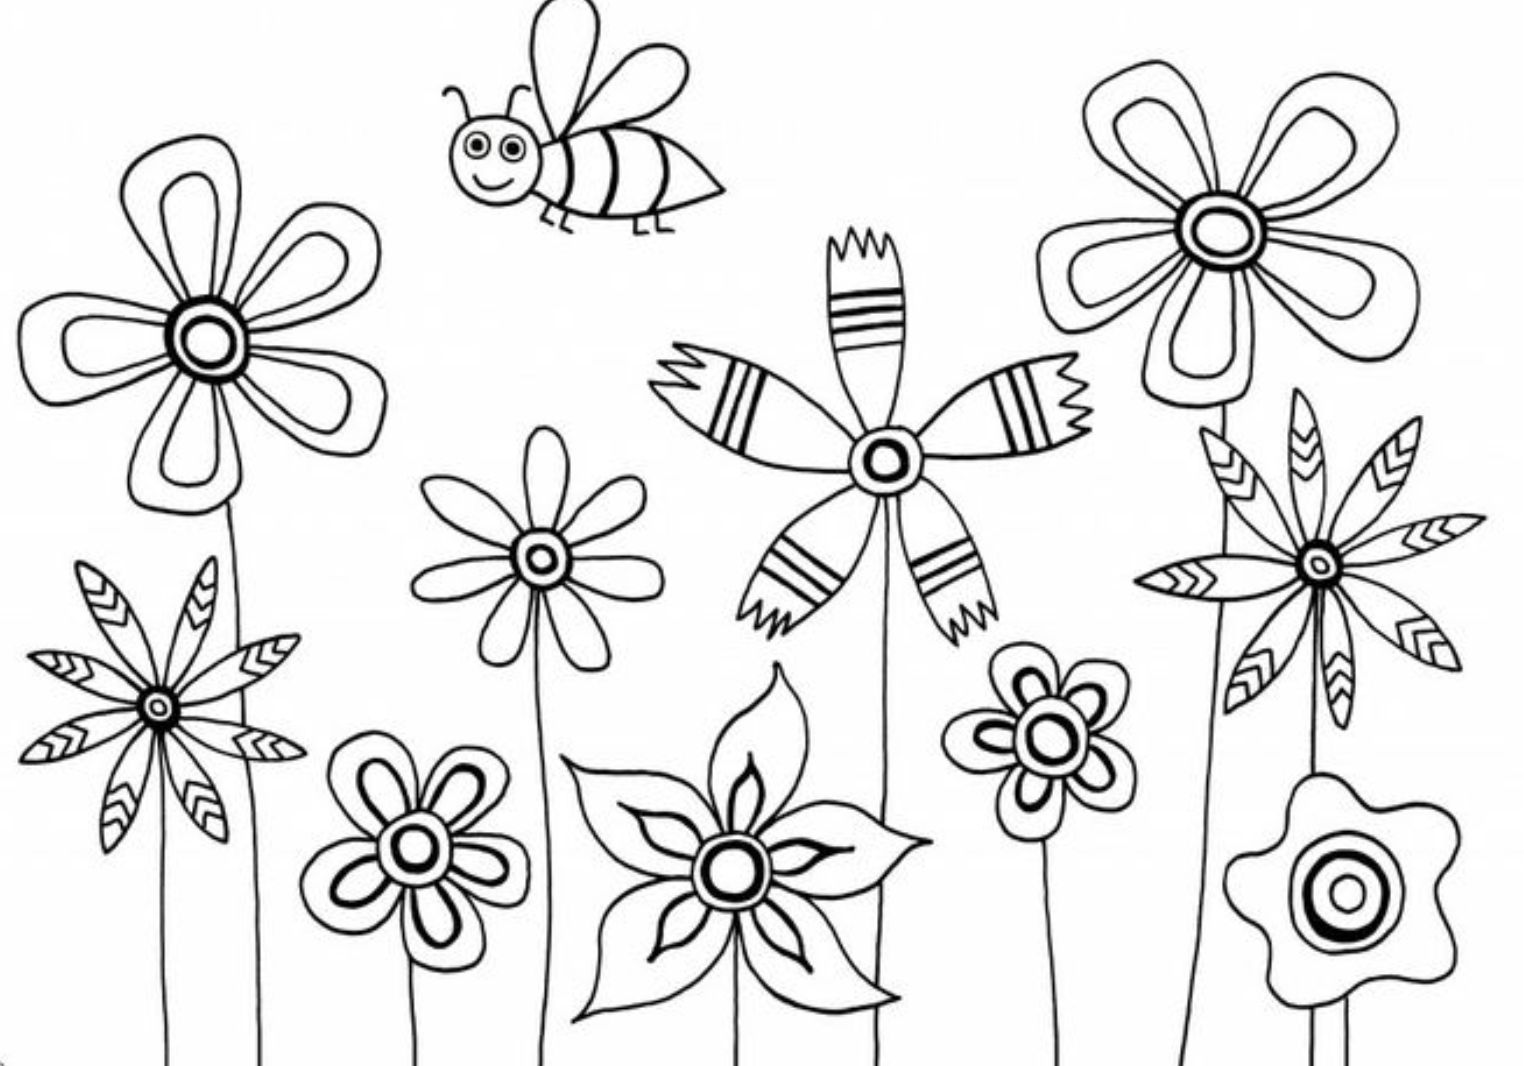 Step By Step Drawing Flowers at GetDrawings.com | Free for personal ...